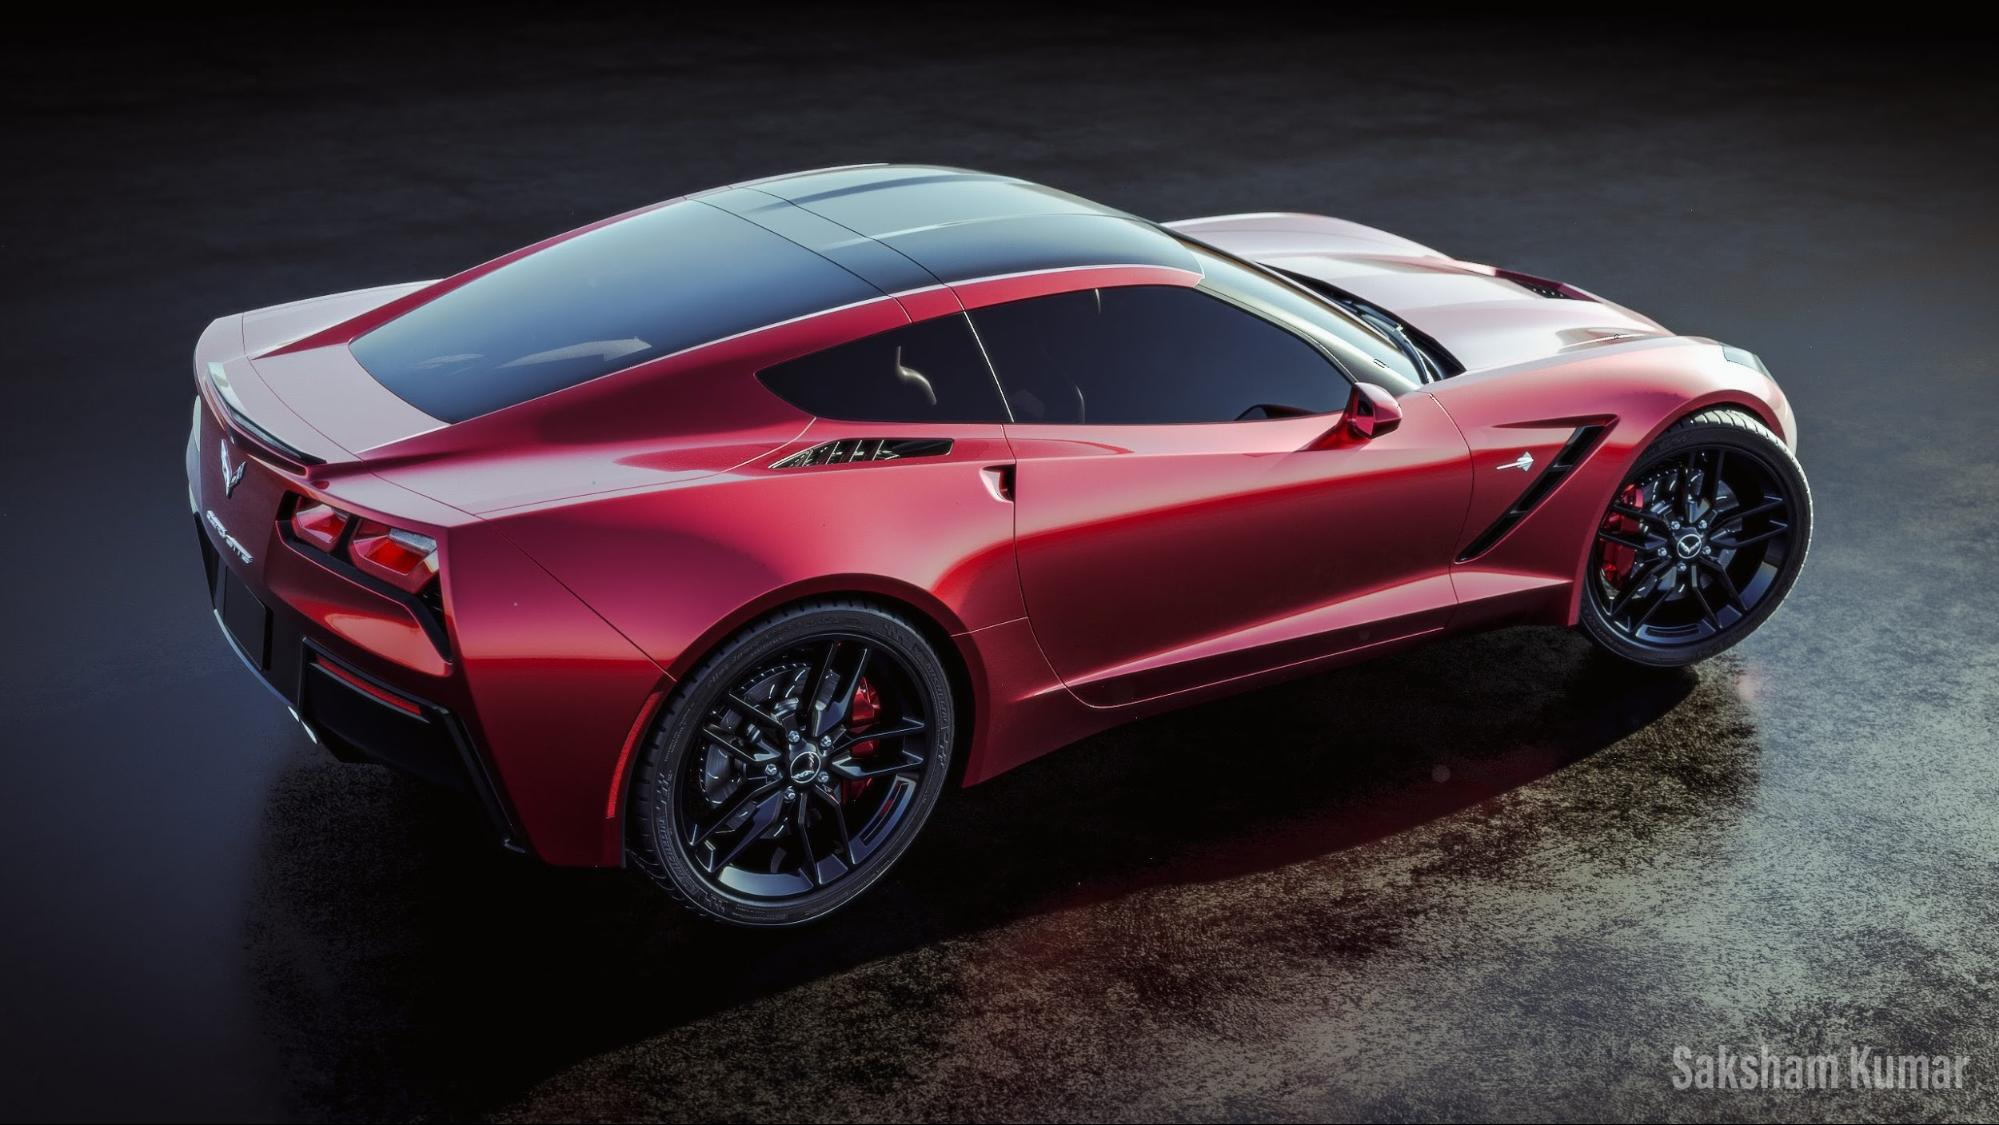 Corvette C7 Stingray render made with Blender